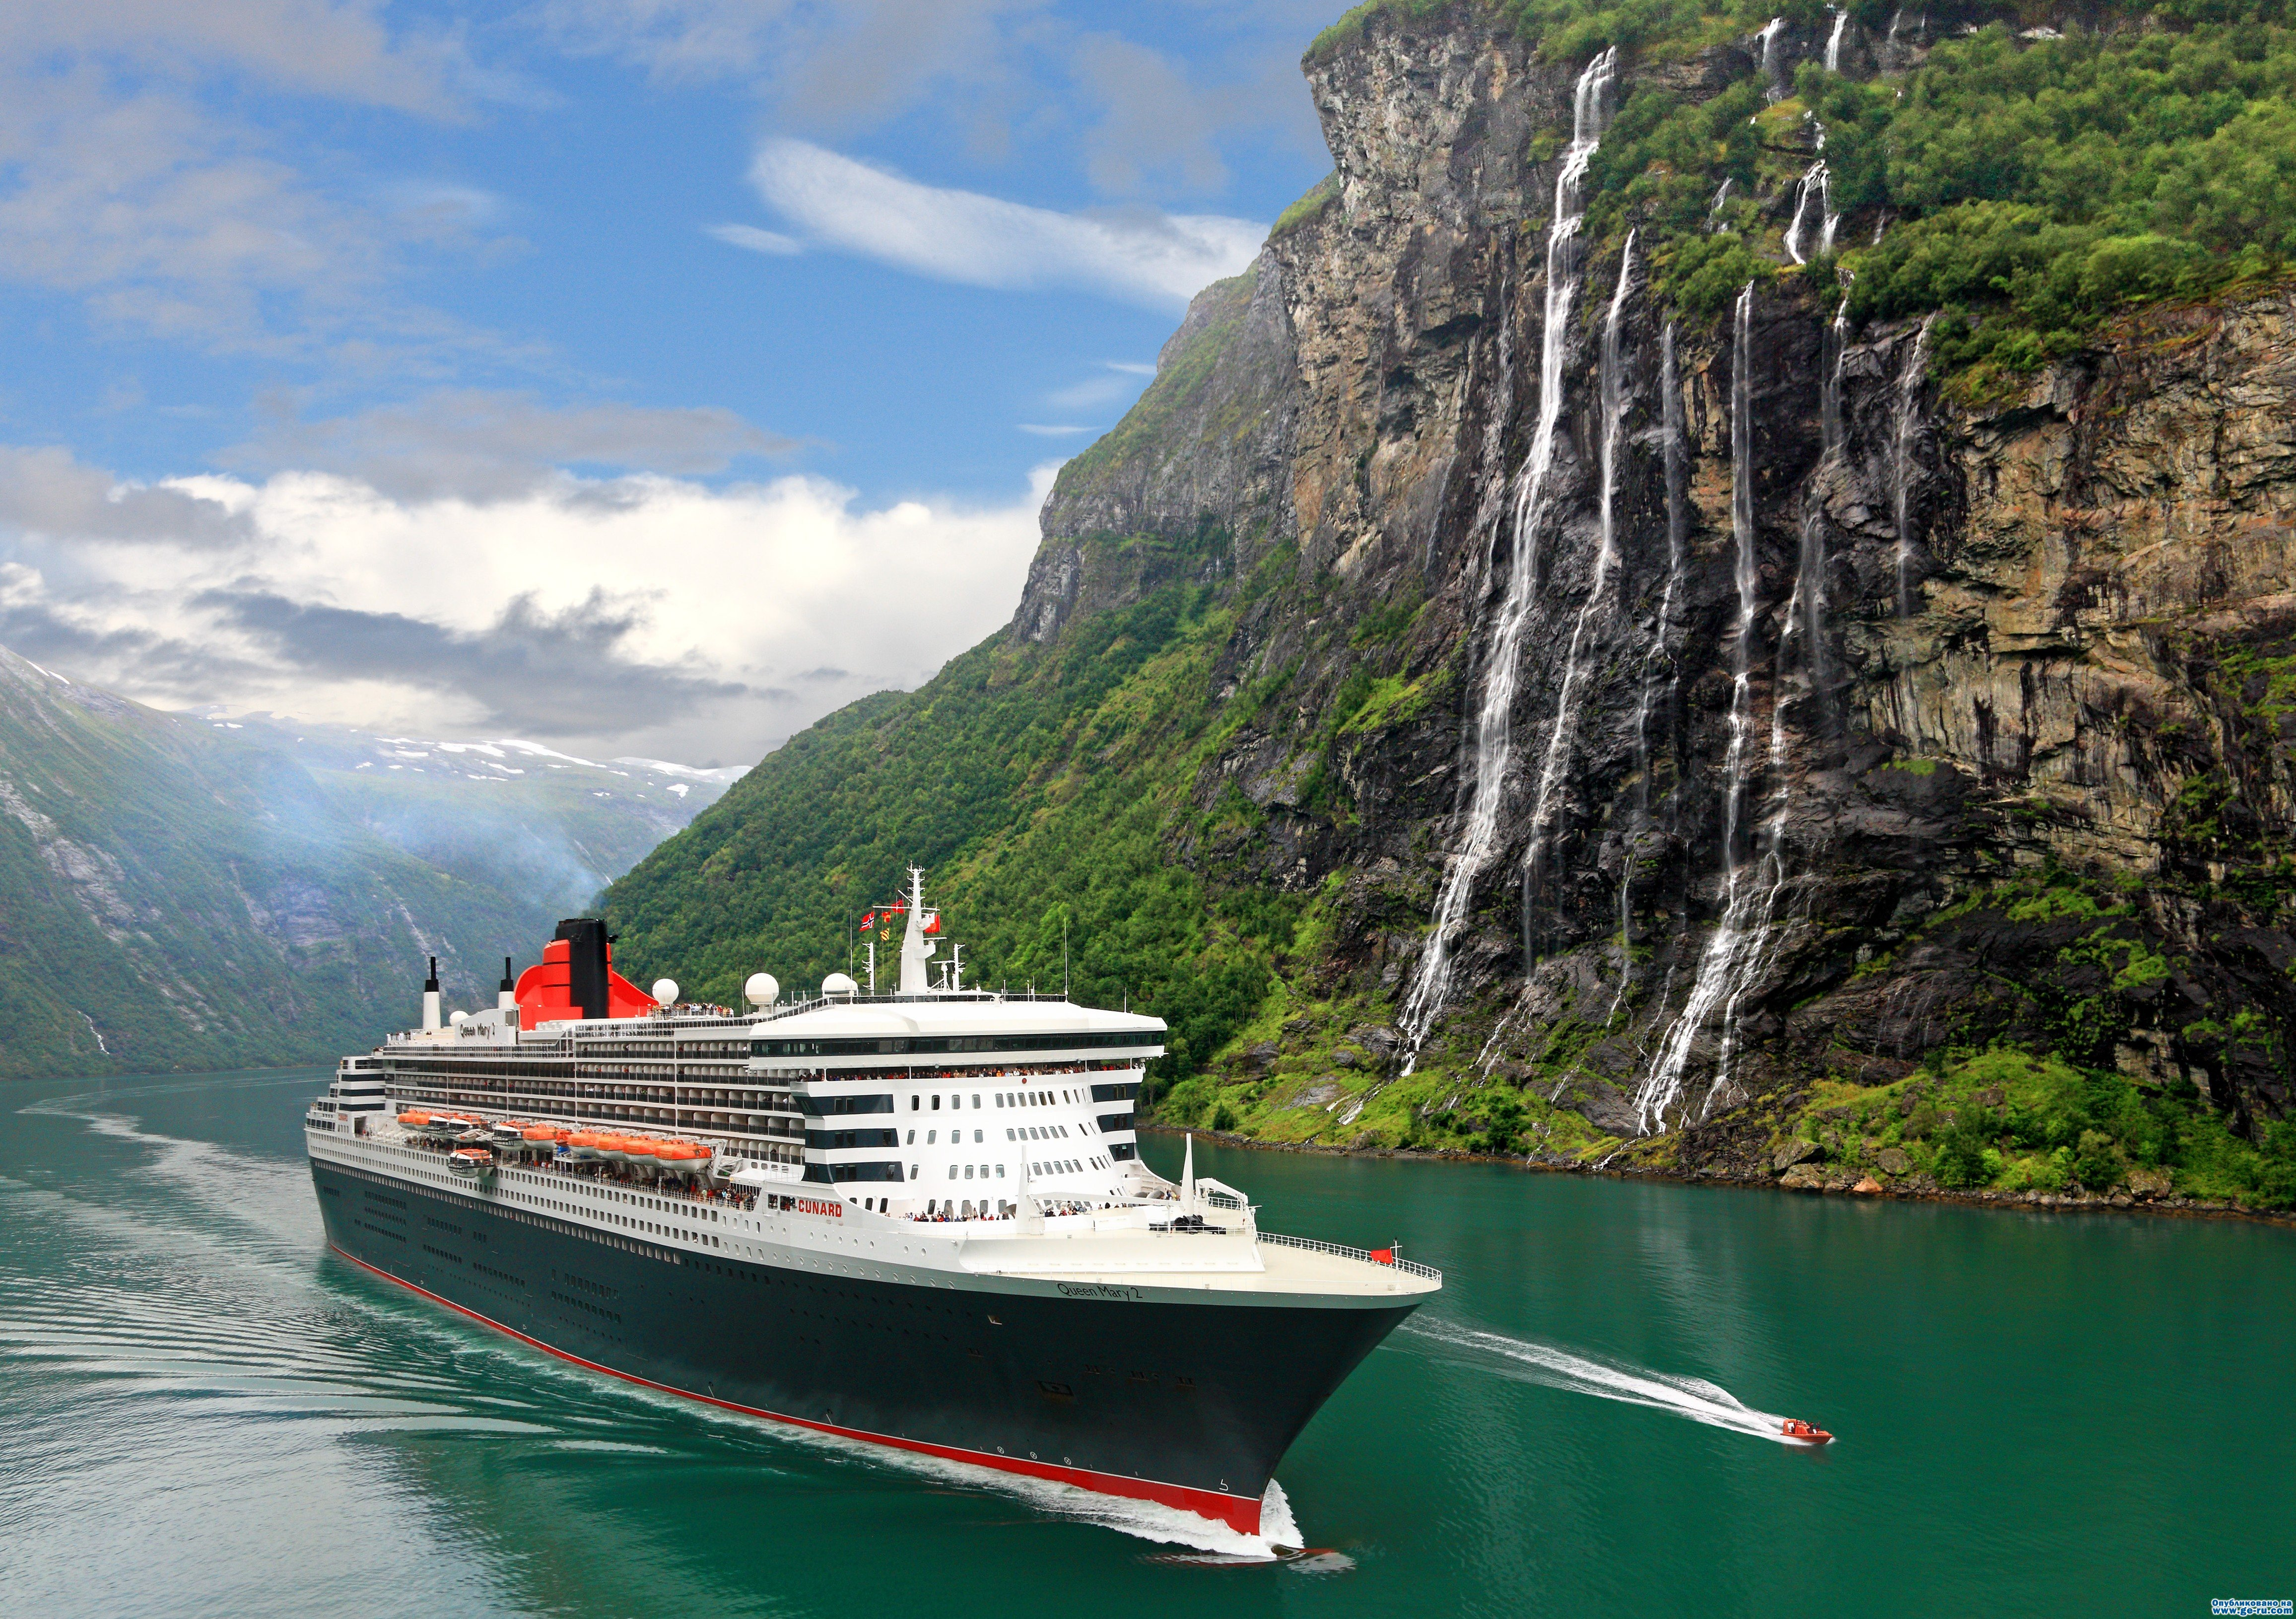 Queen-Mary-2-in-Fjords-e1313694879220.jpg